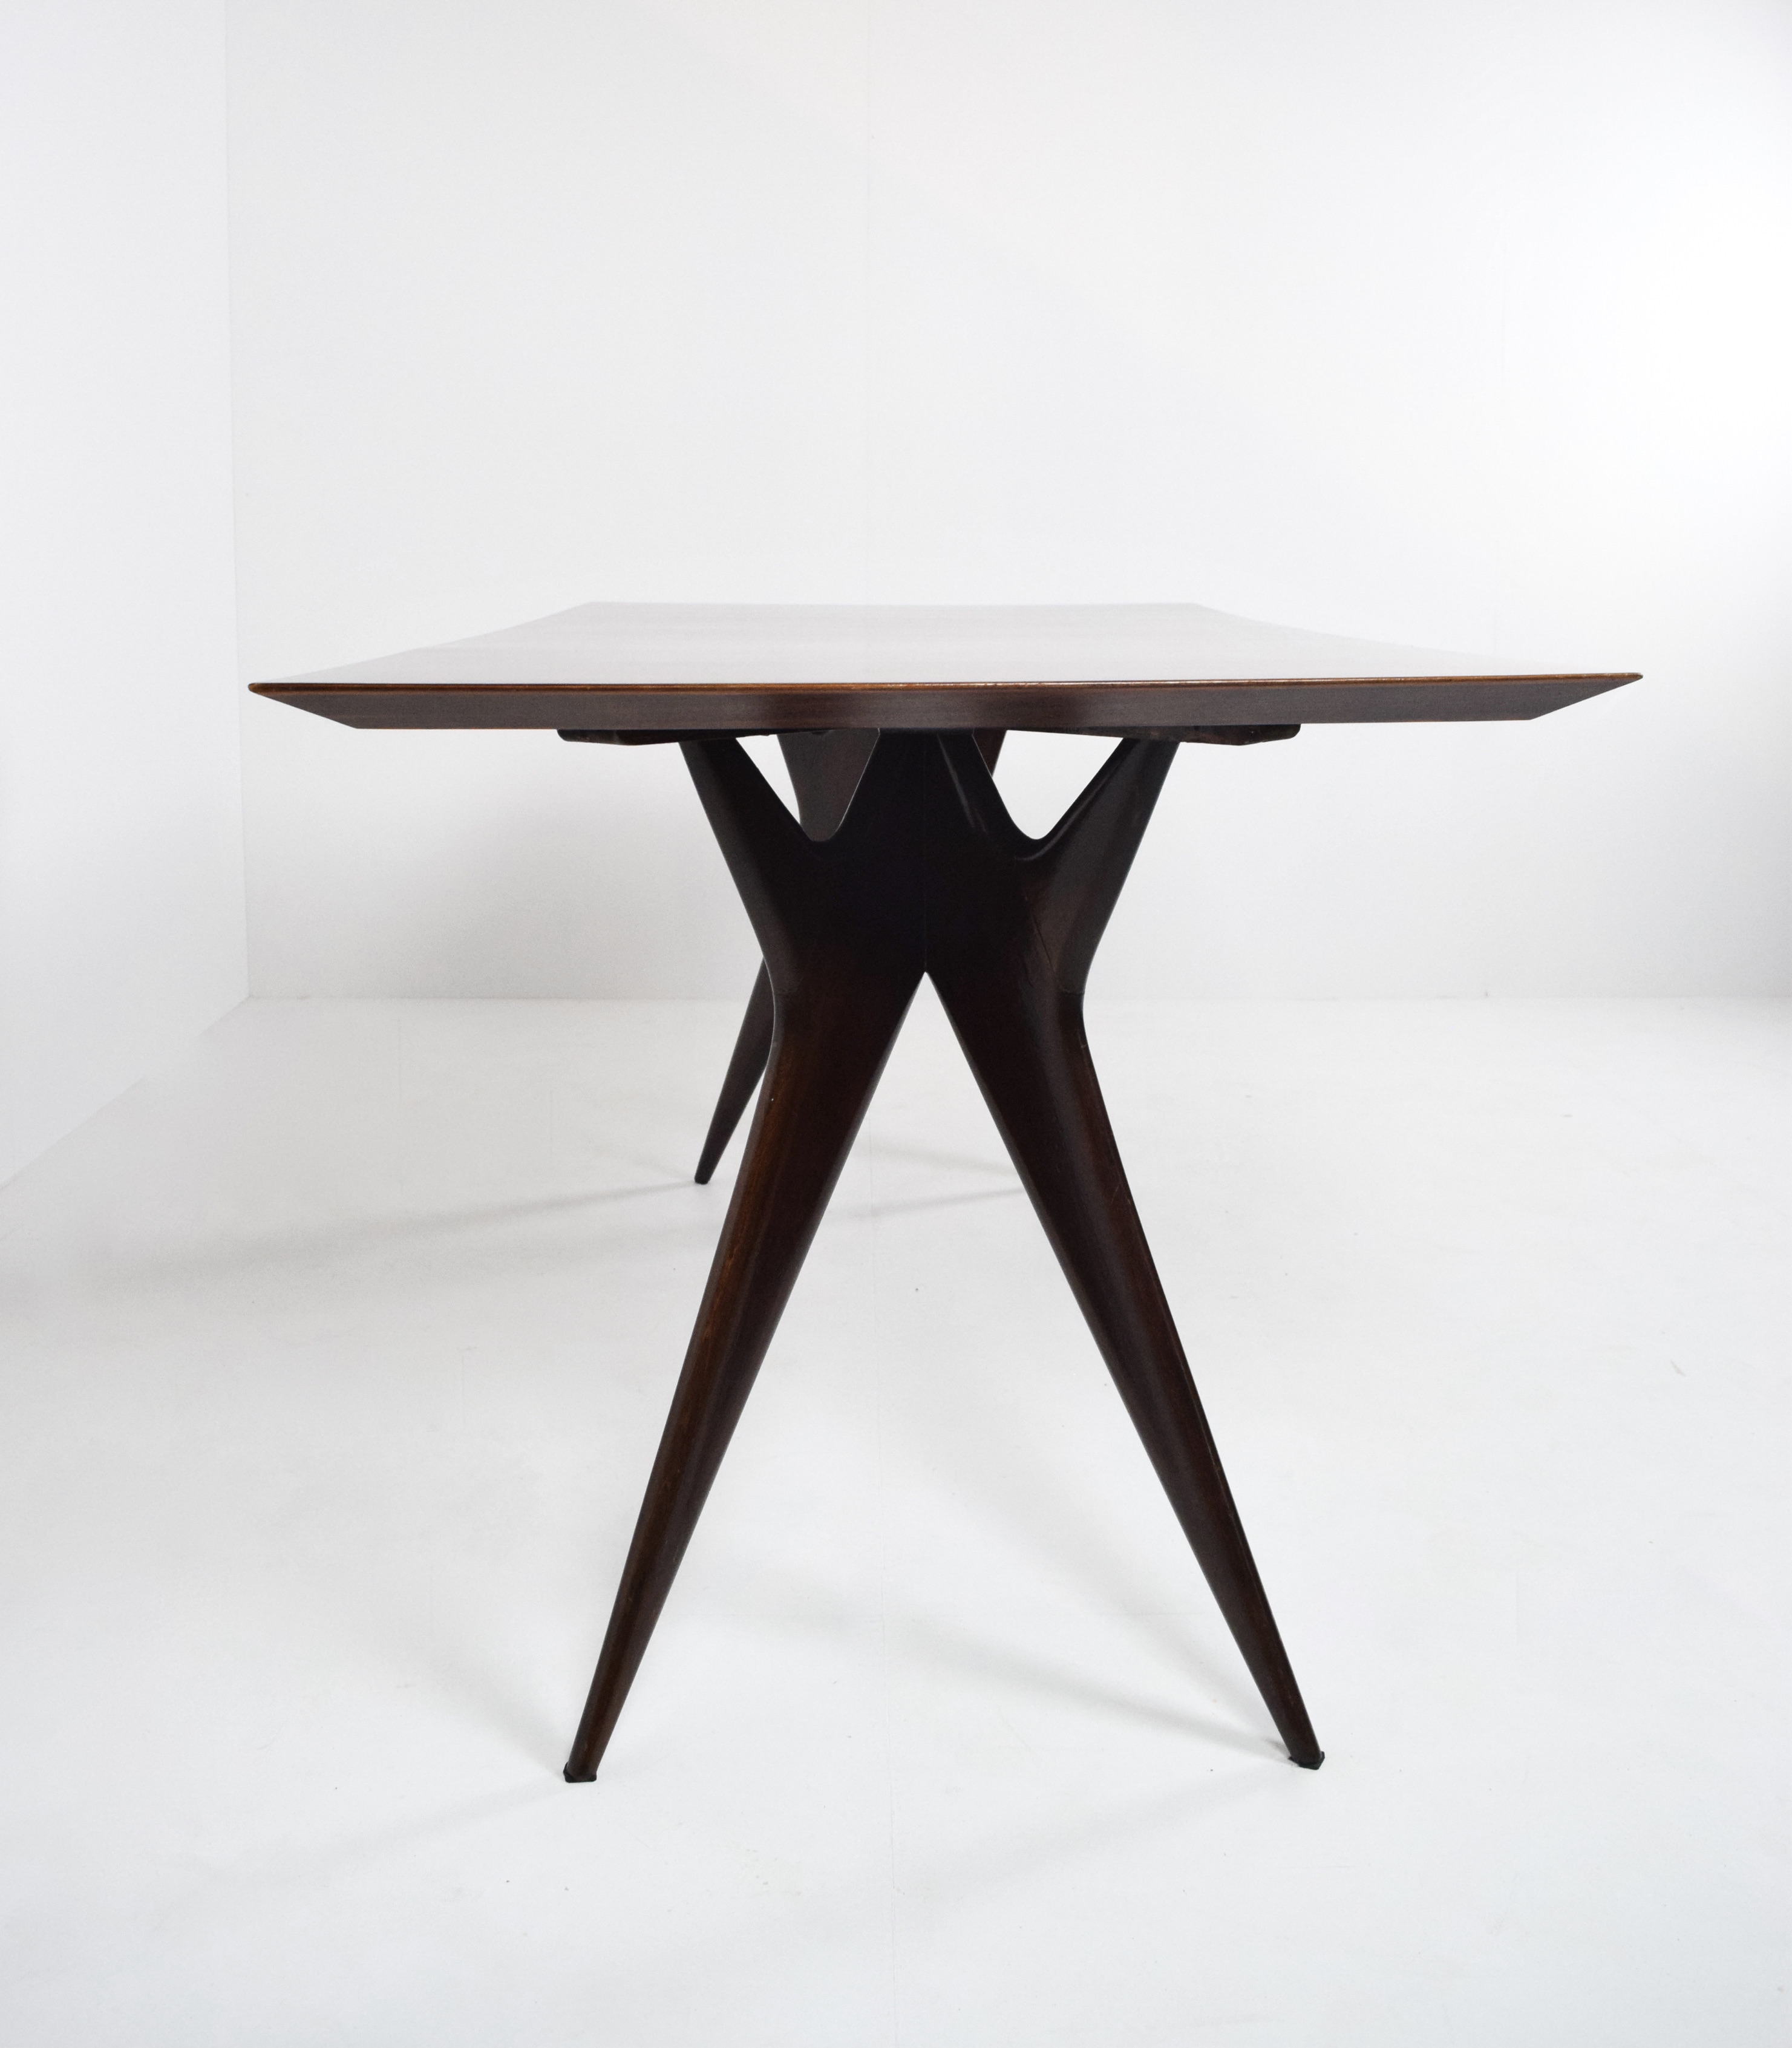 Side view Ico Parisi Table in Rosewood for MIM Roma, Italy